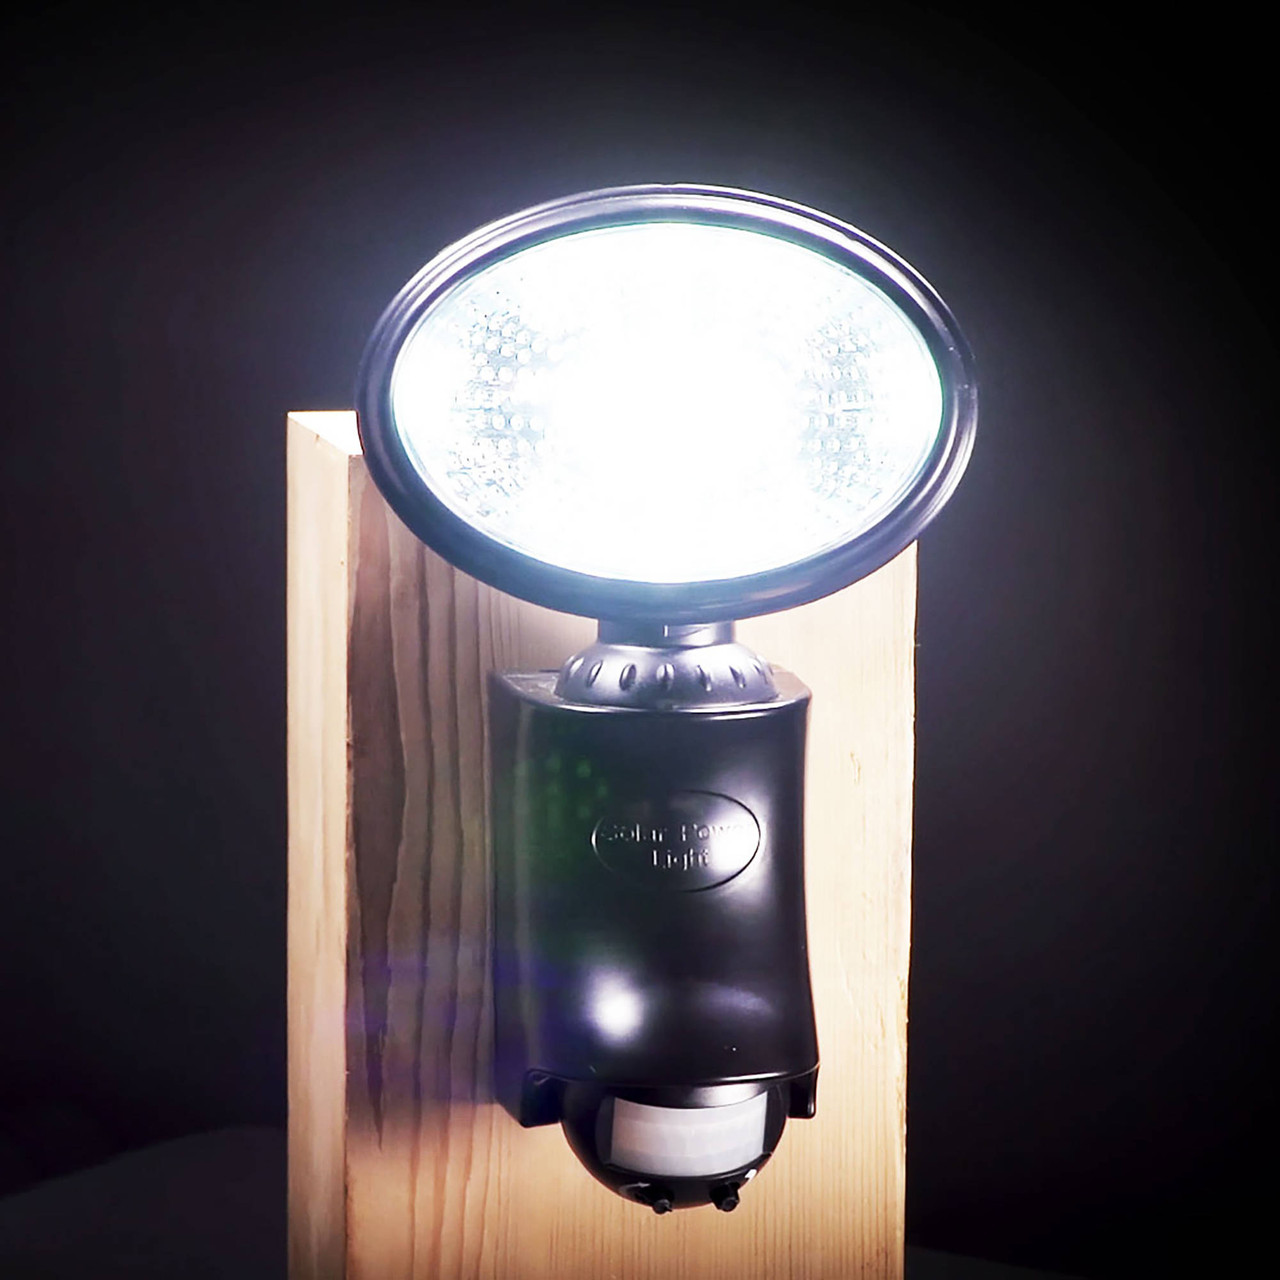 Classy Caps' Black Solar Motion Sensor Security Light with 9 LEDs on Post